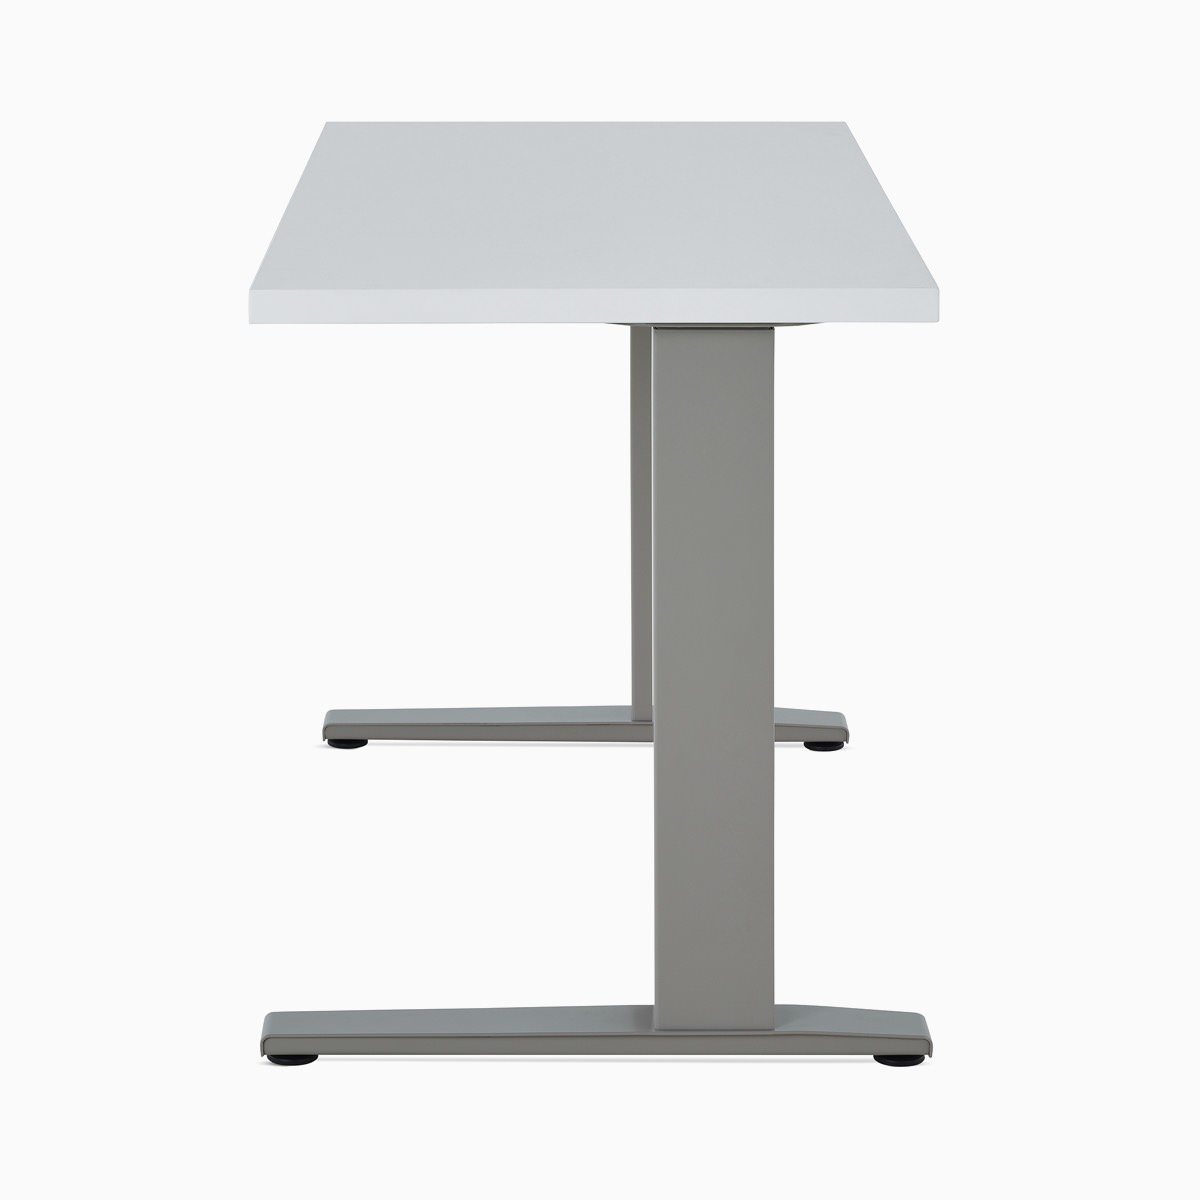 A white Motia Sit-to-Stand Table with gray legs.